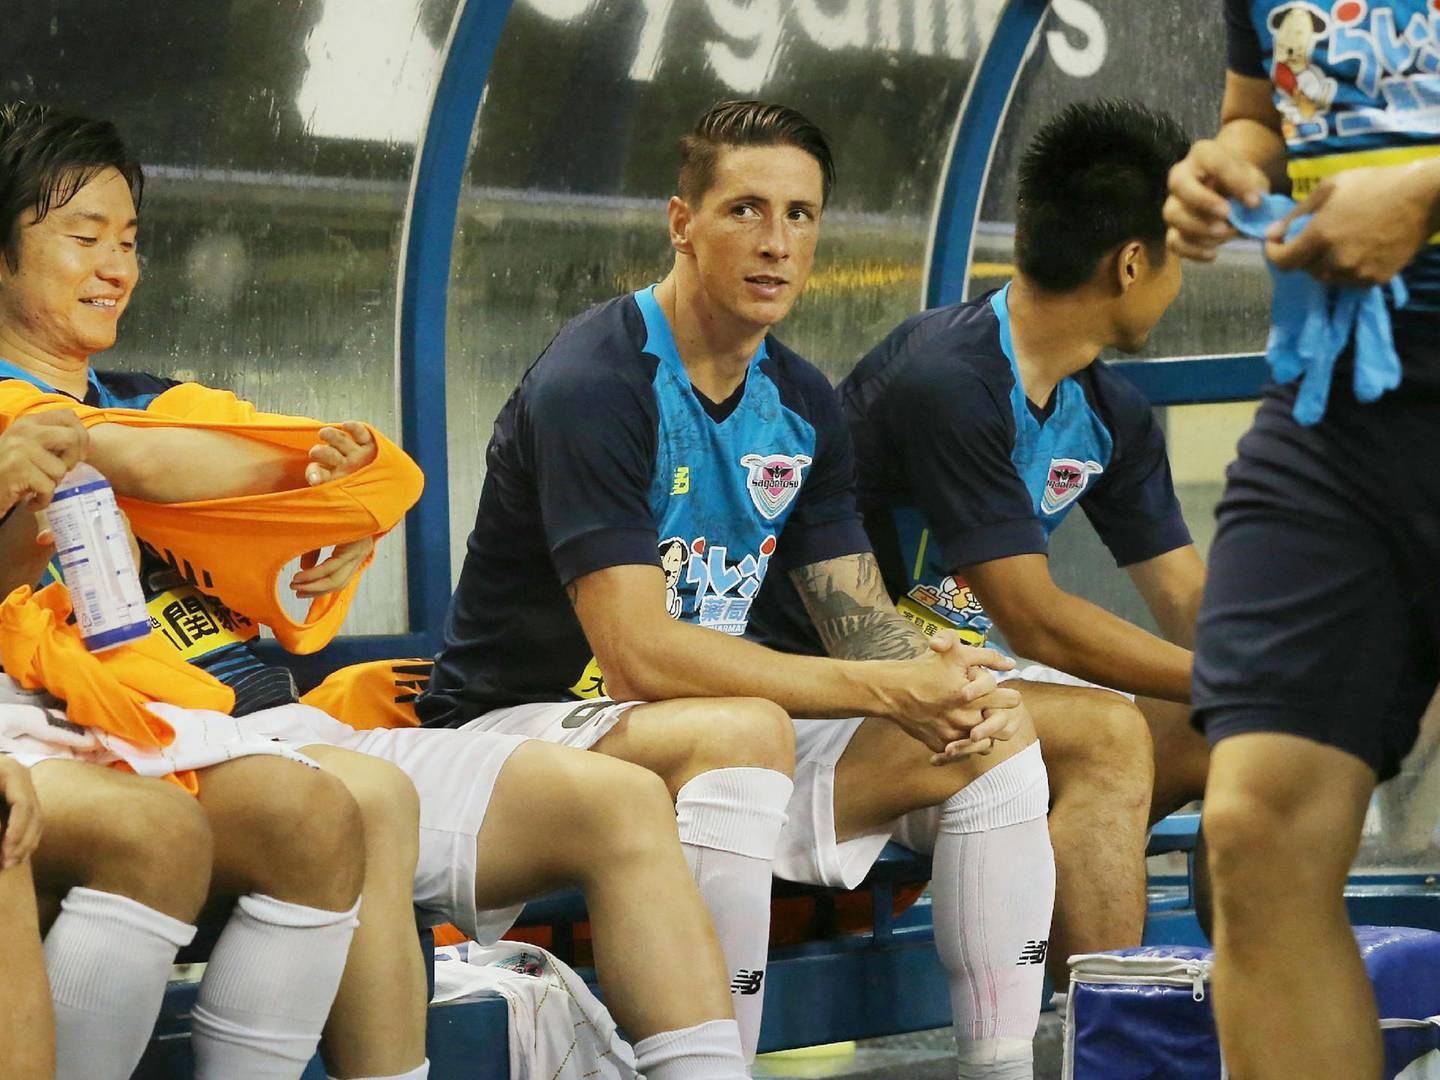 J-League club team Sagan Tosu's new signing, Spanish football player Fernando Torres (C), looks on from the bench prior to a match against Vegalta Sendai at Best Amenity Stadium in Tosu, Saga prefecture on July 22, 2018.  - Japan OUT  / AFP / JIJI PRESS / JIJI PRESS